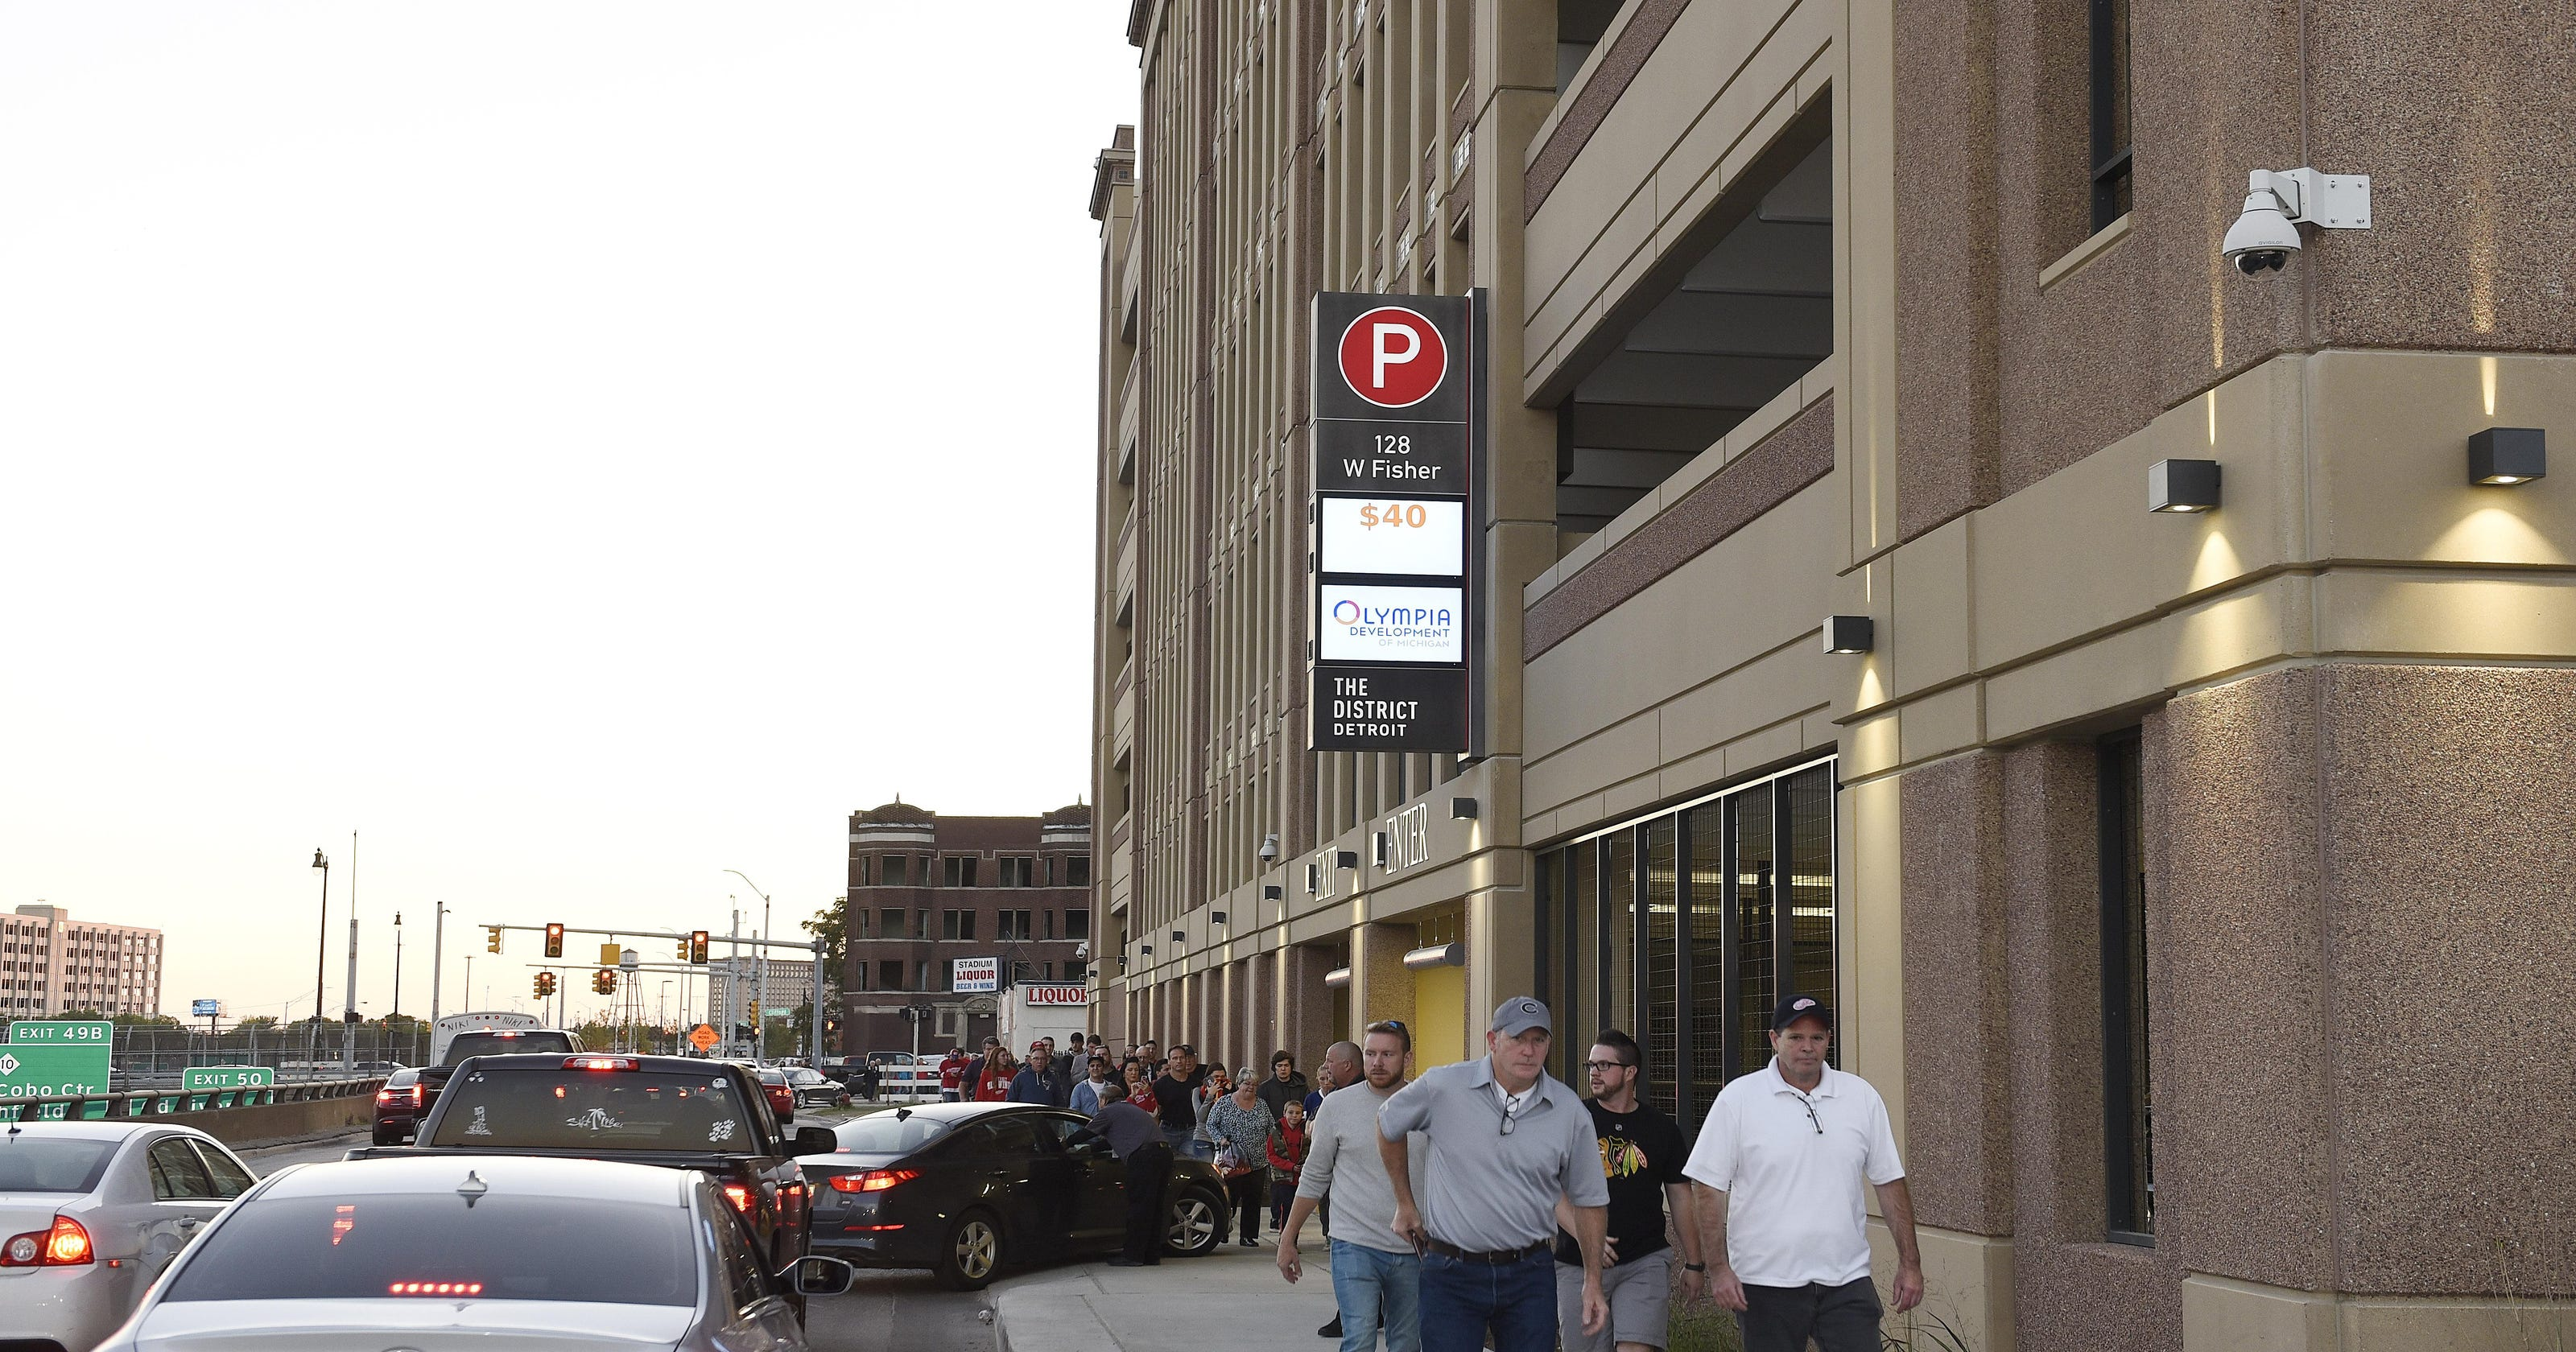 Where to park at Little Caesars Arena